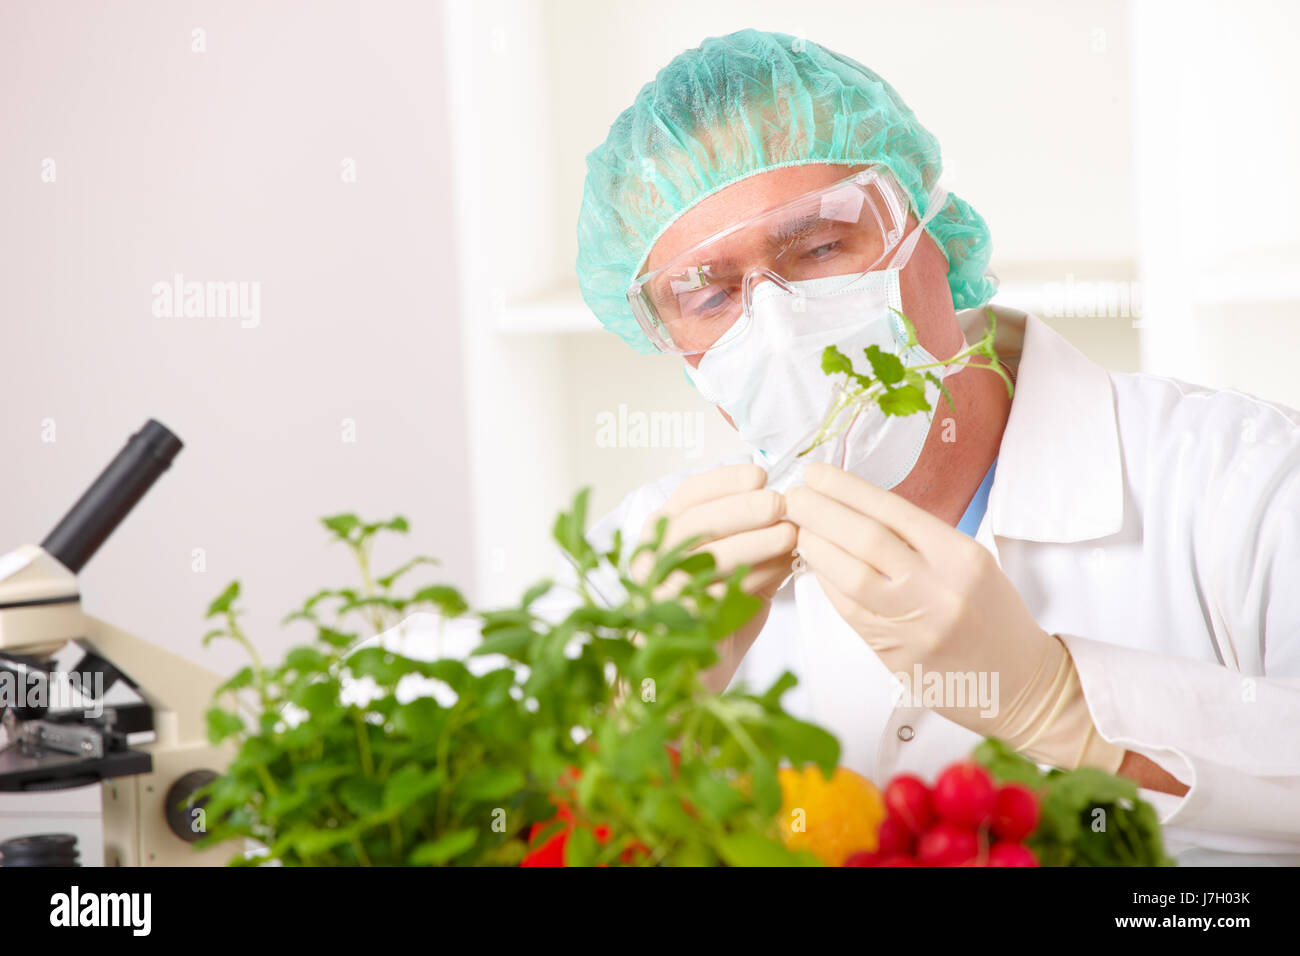 engineering modified genetic plant food aliment men man experimental science Stock Photo